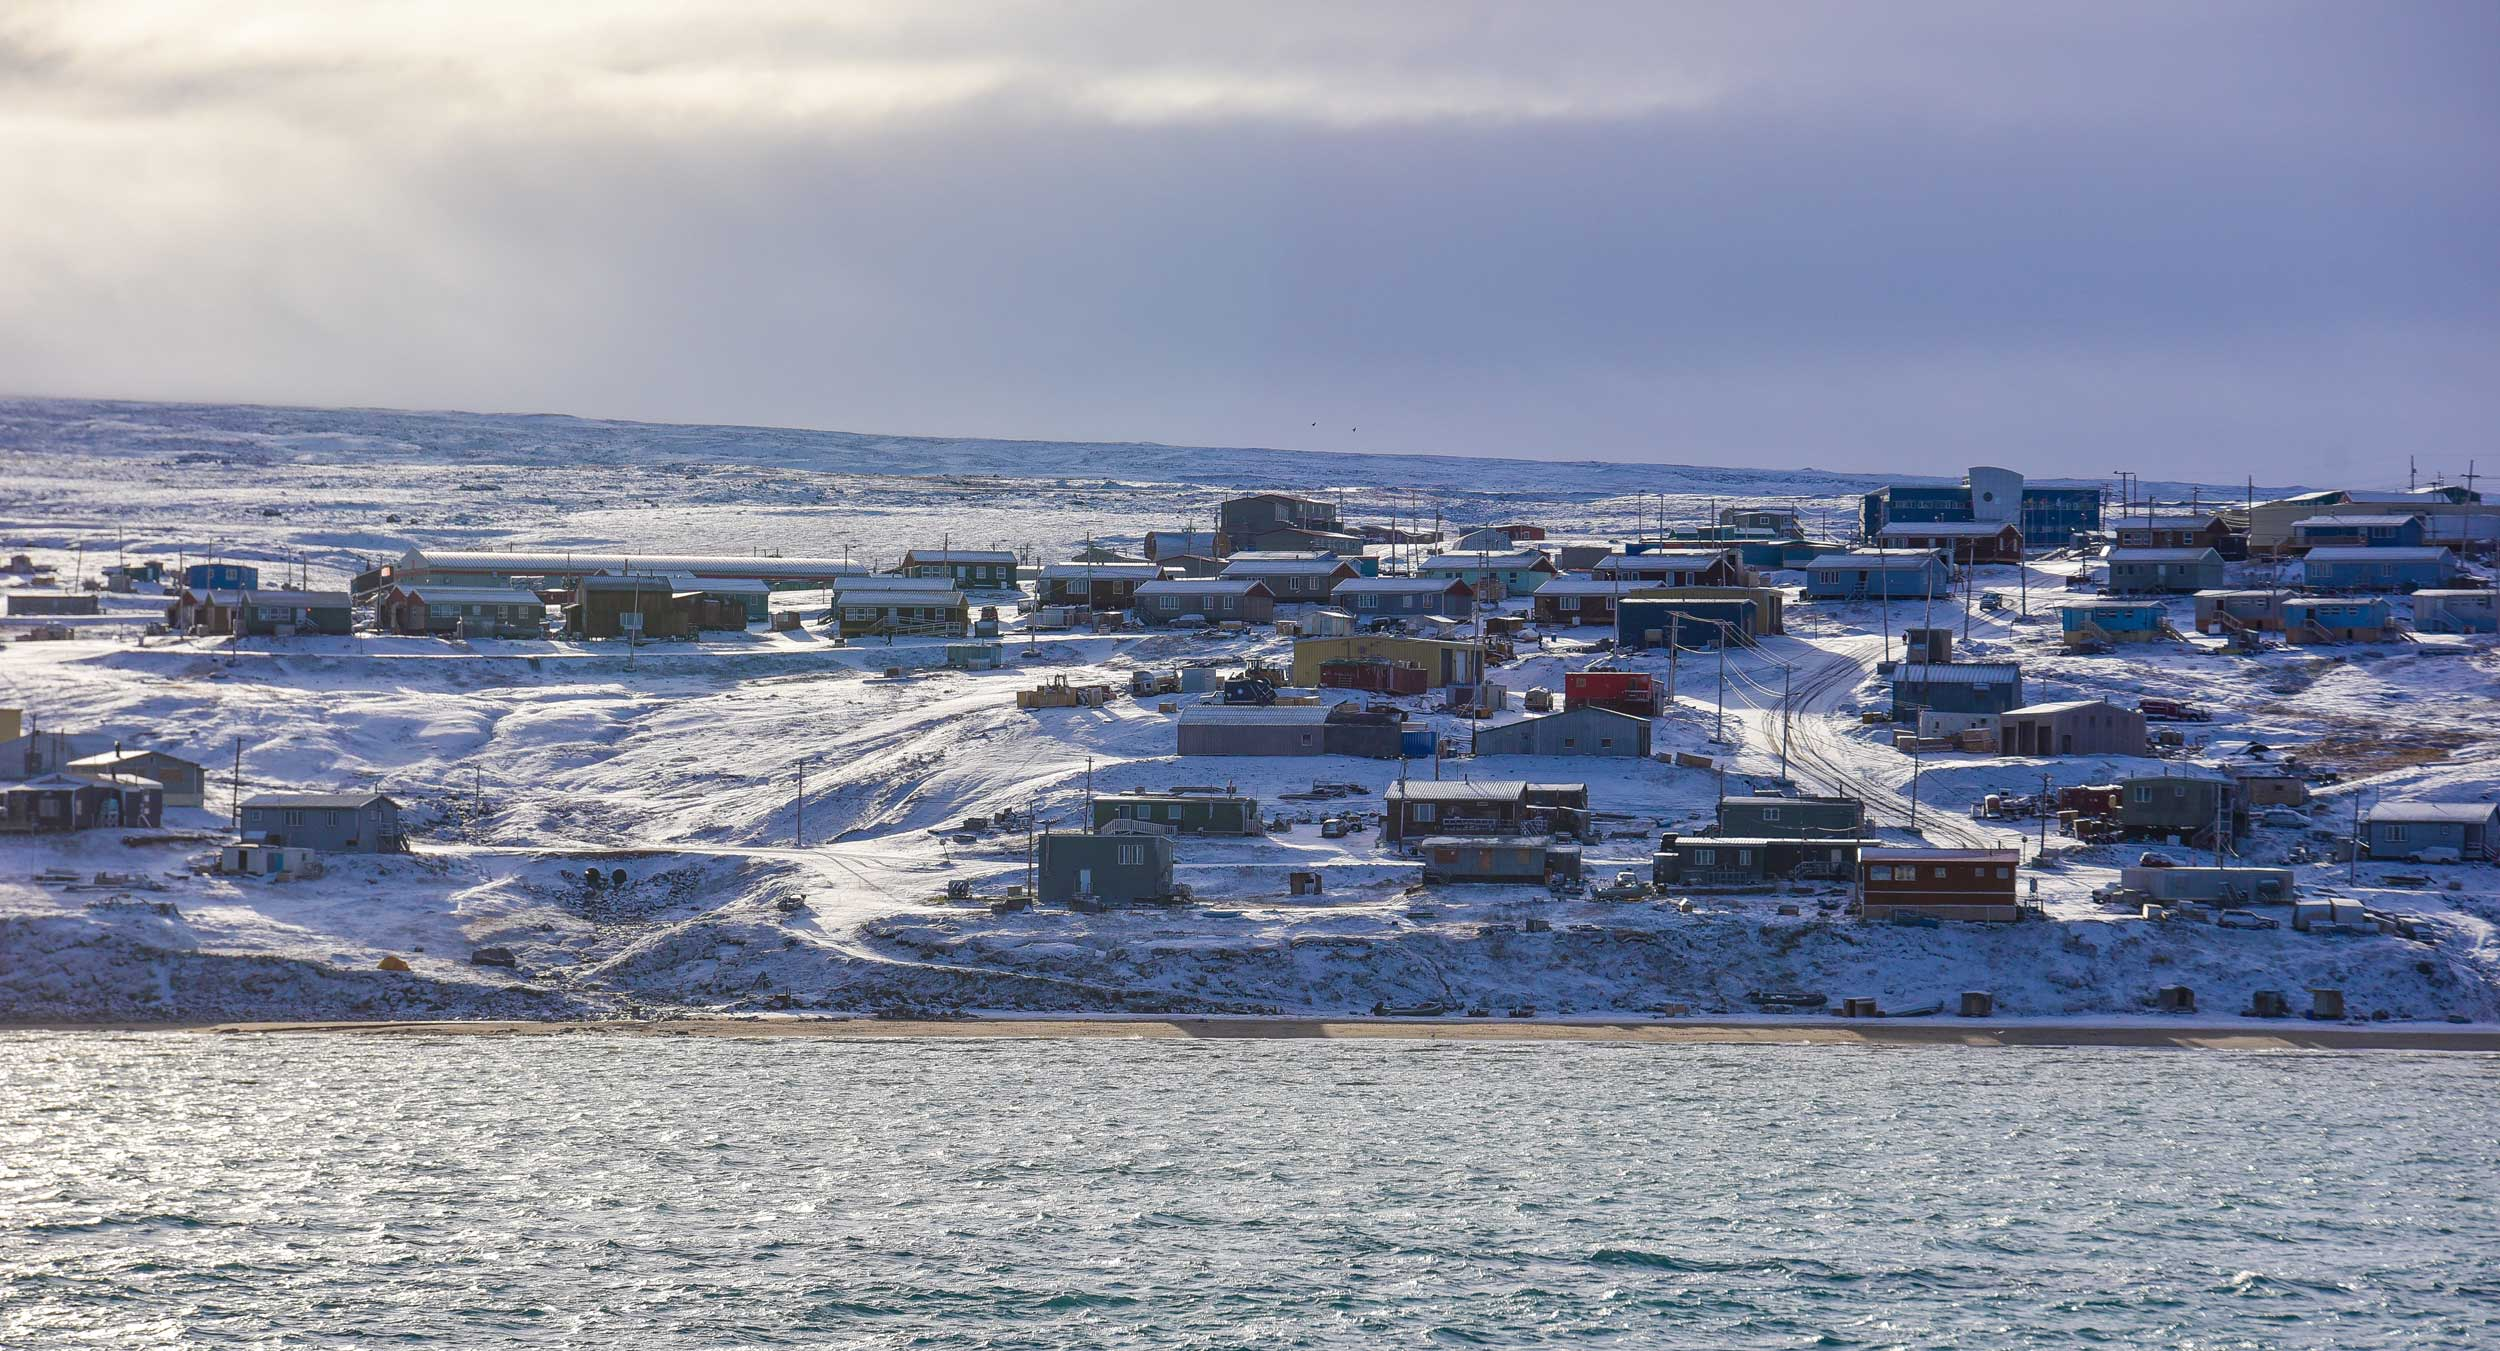 A cluster of shacks on a snowy hill by the sea